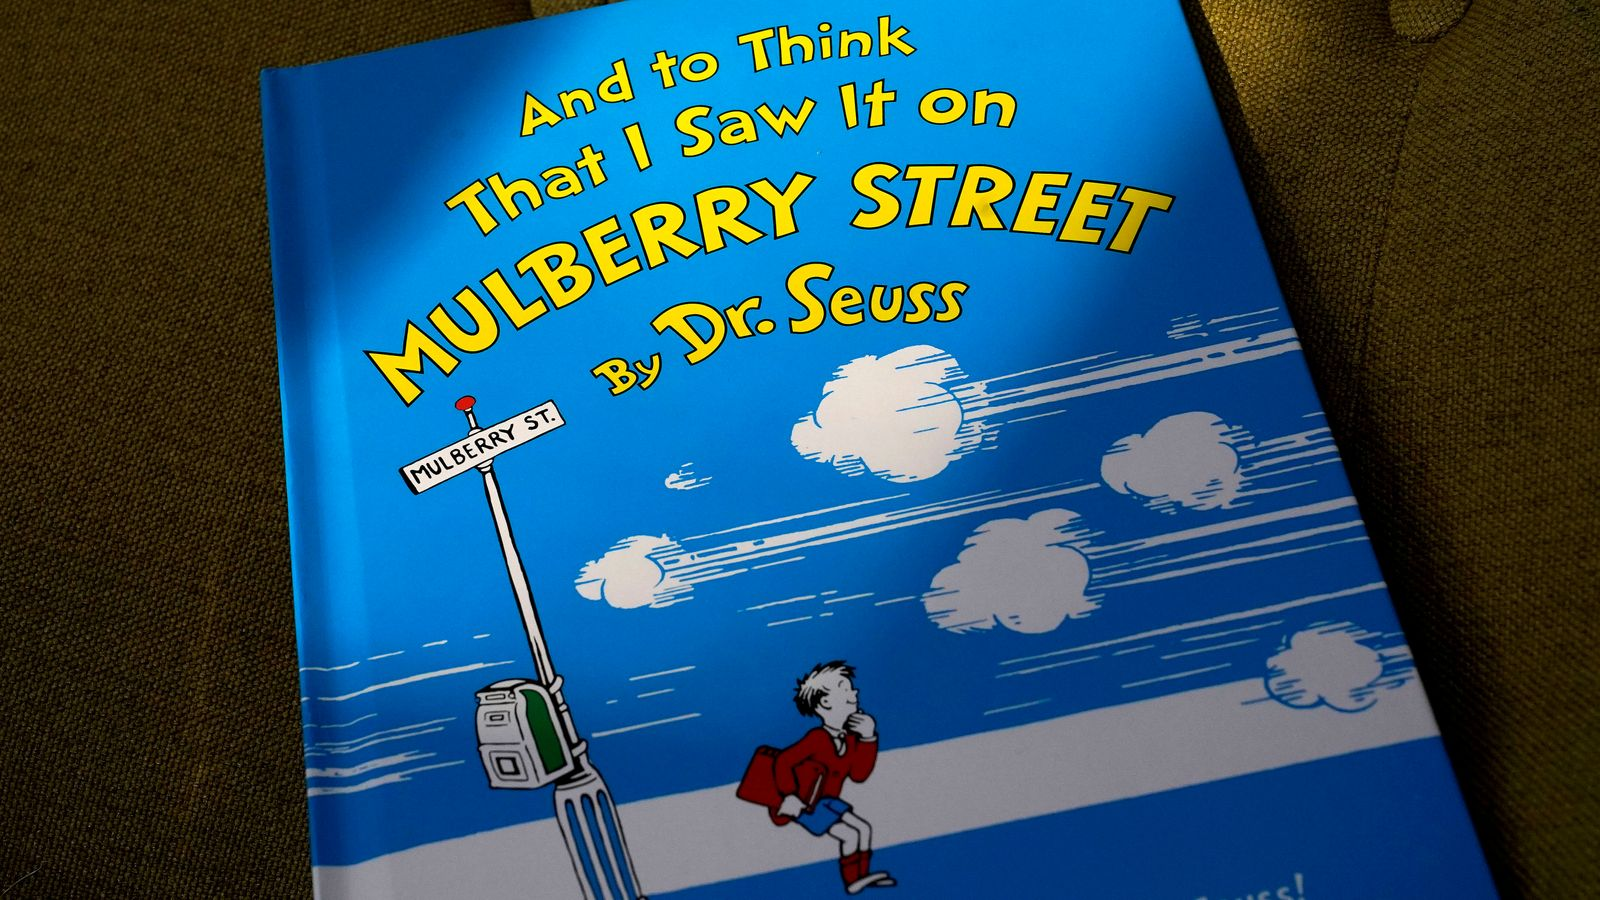 Dr Seuss: Six books to stop publication over 'hurtful and unsuitable' racist imagery